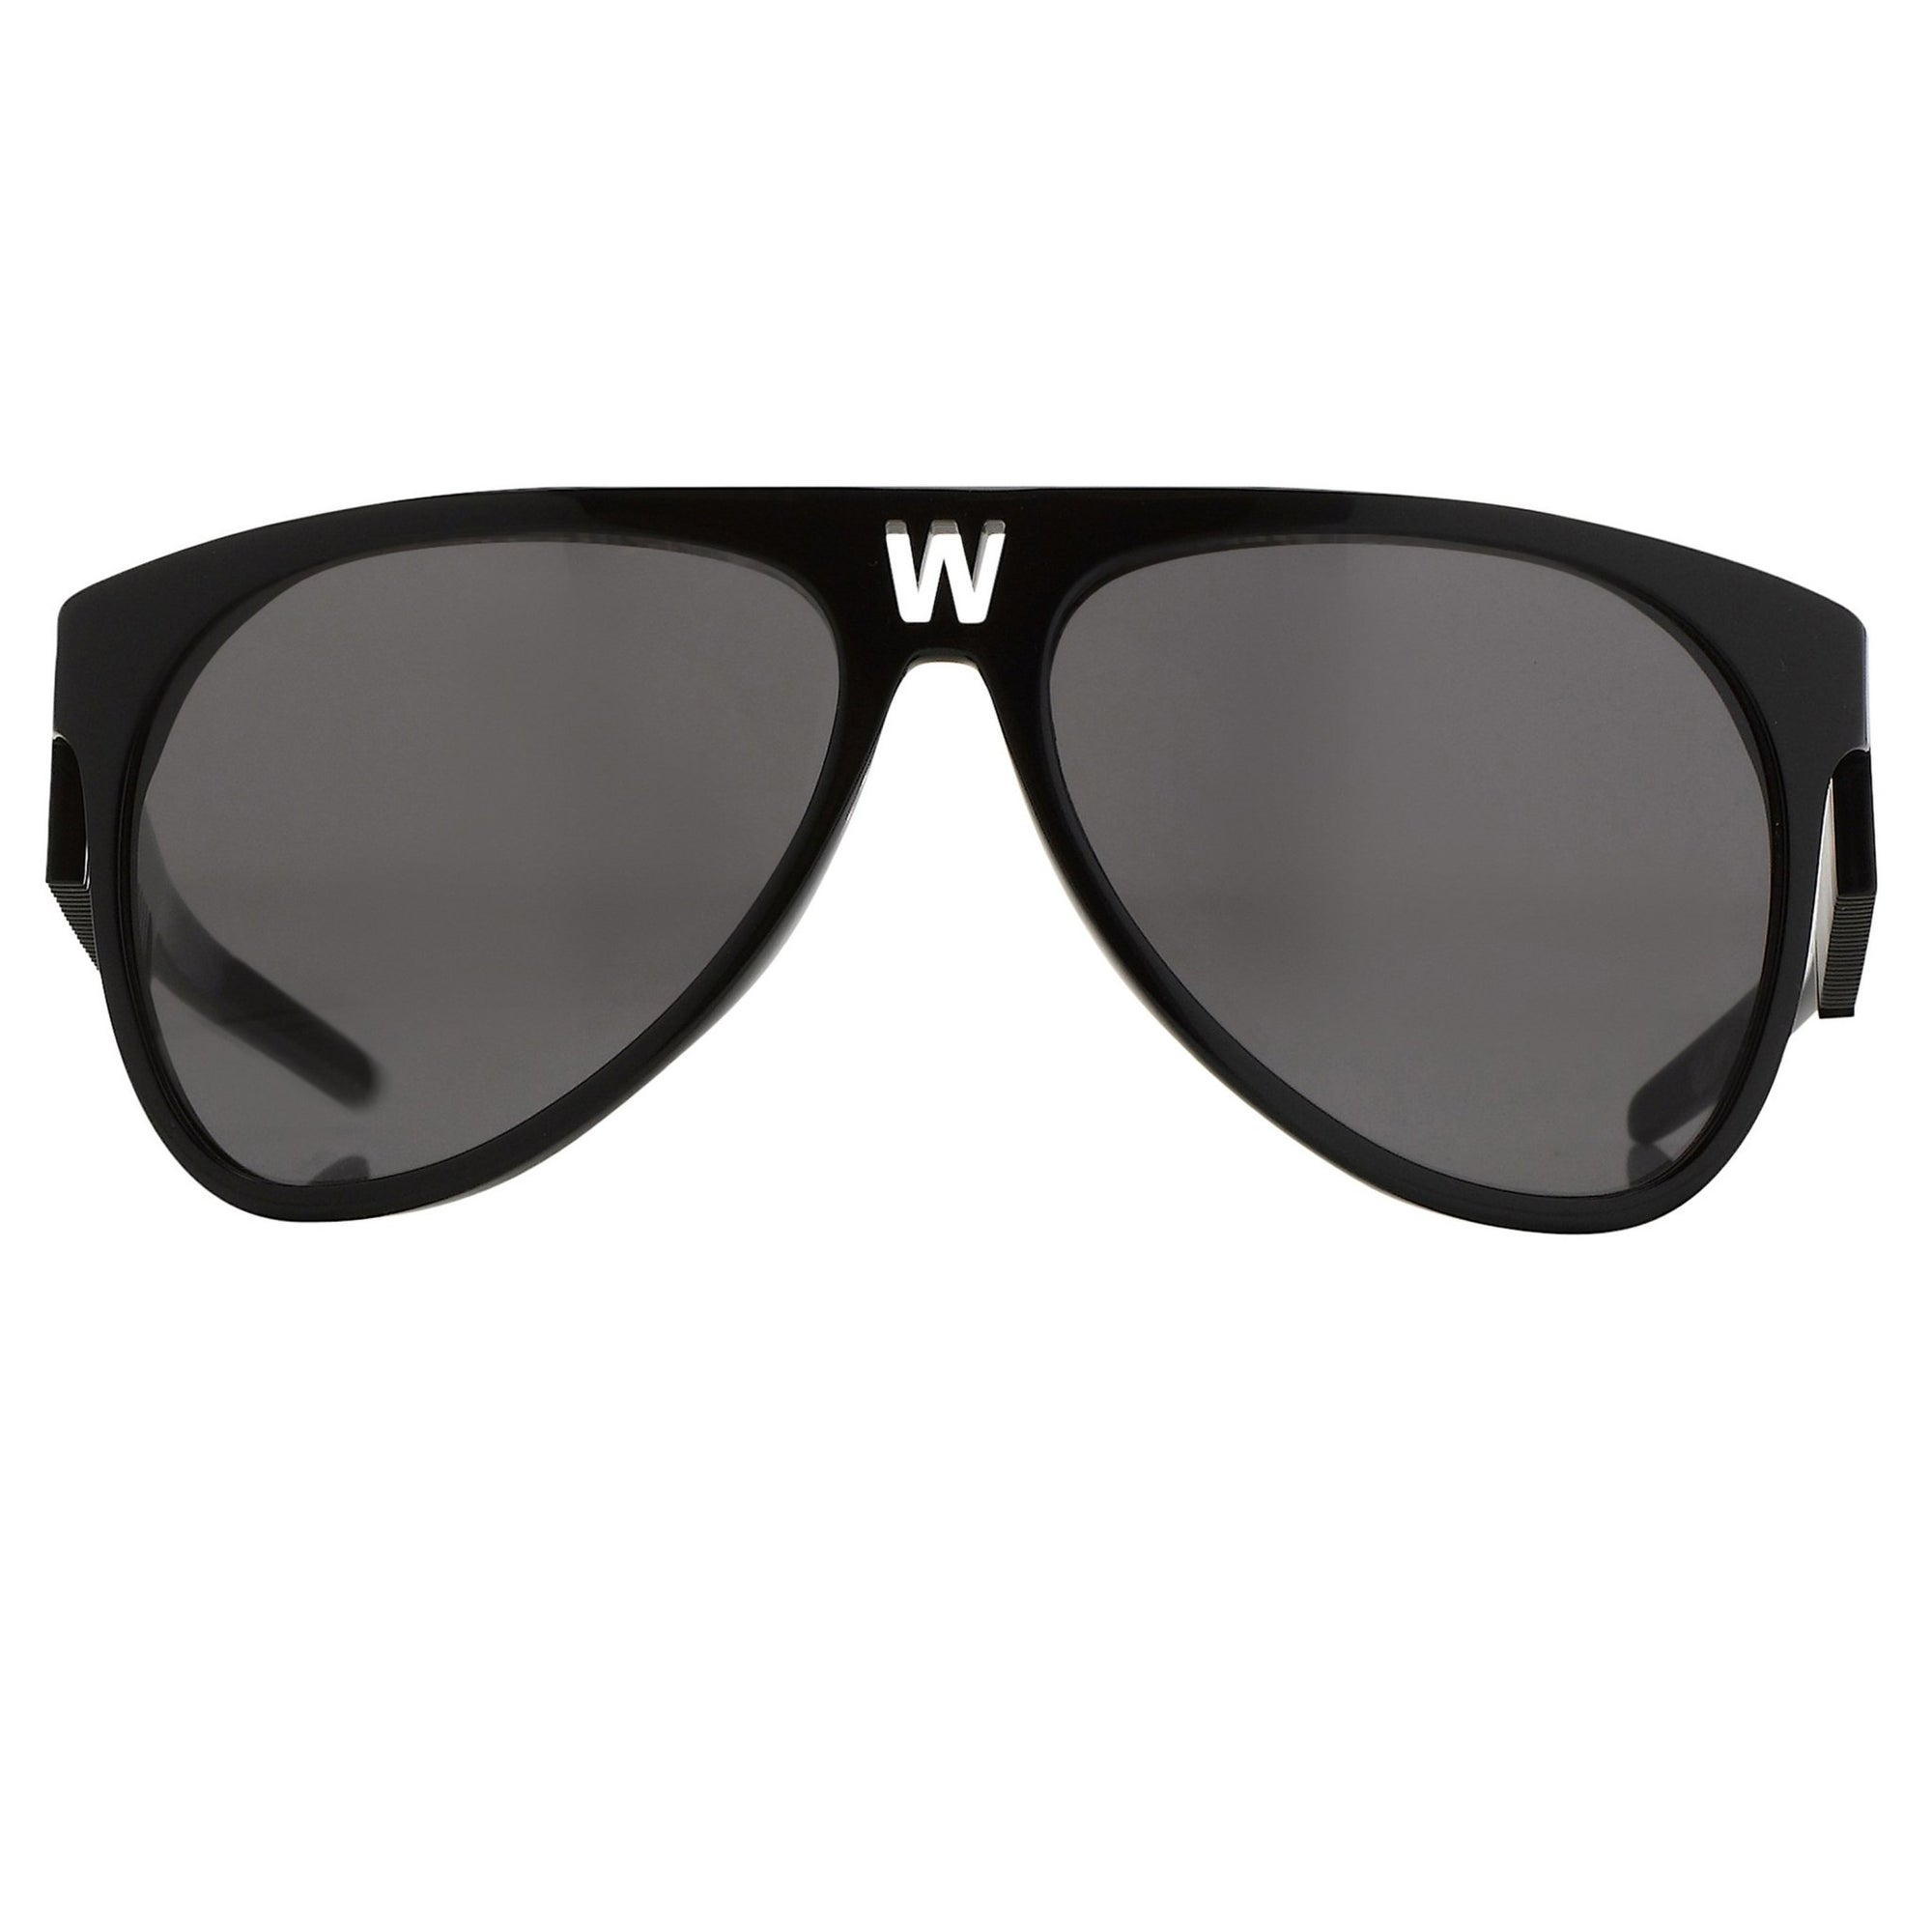 Walter Van Beirendonck Sunglasses Black and Grey Lenses - WVB4C1SUN - Watches & Crystals